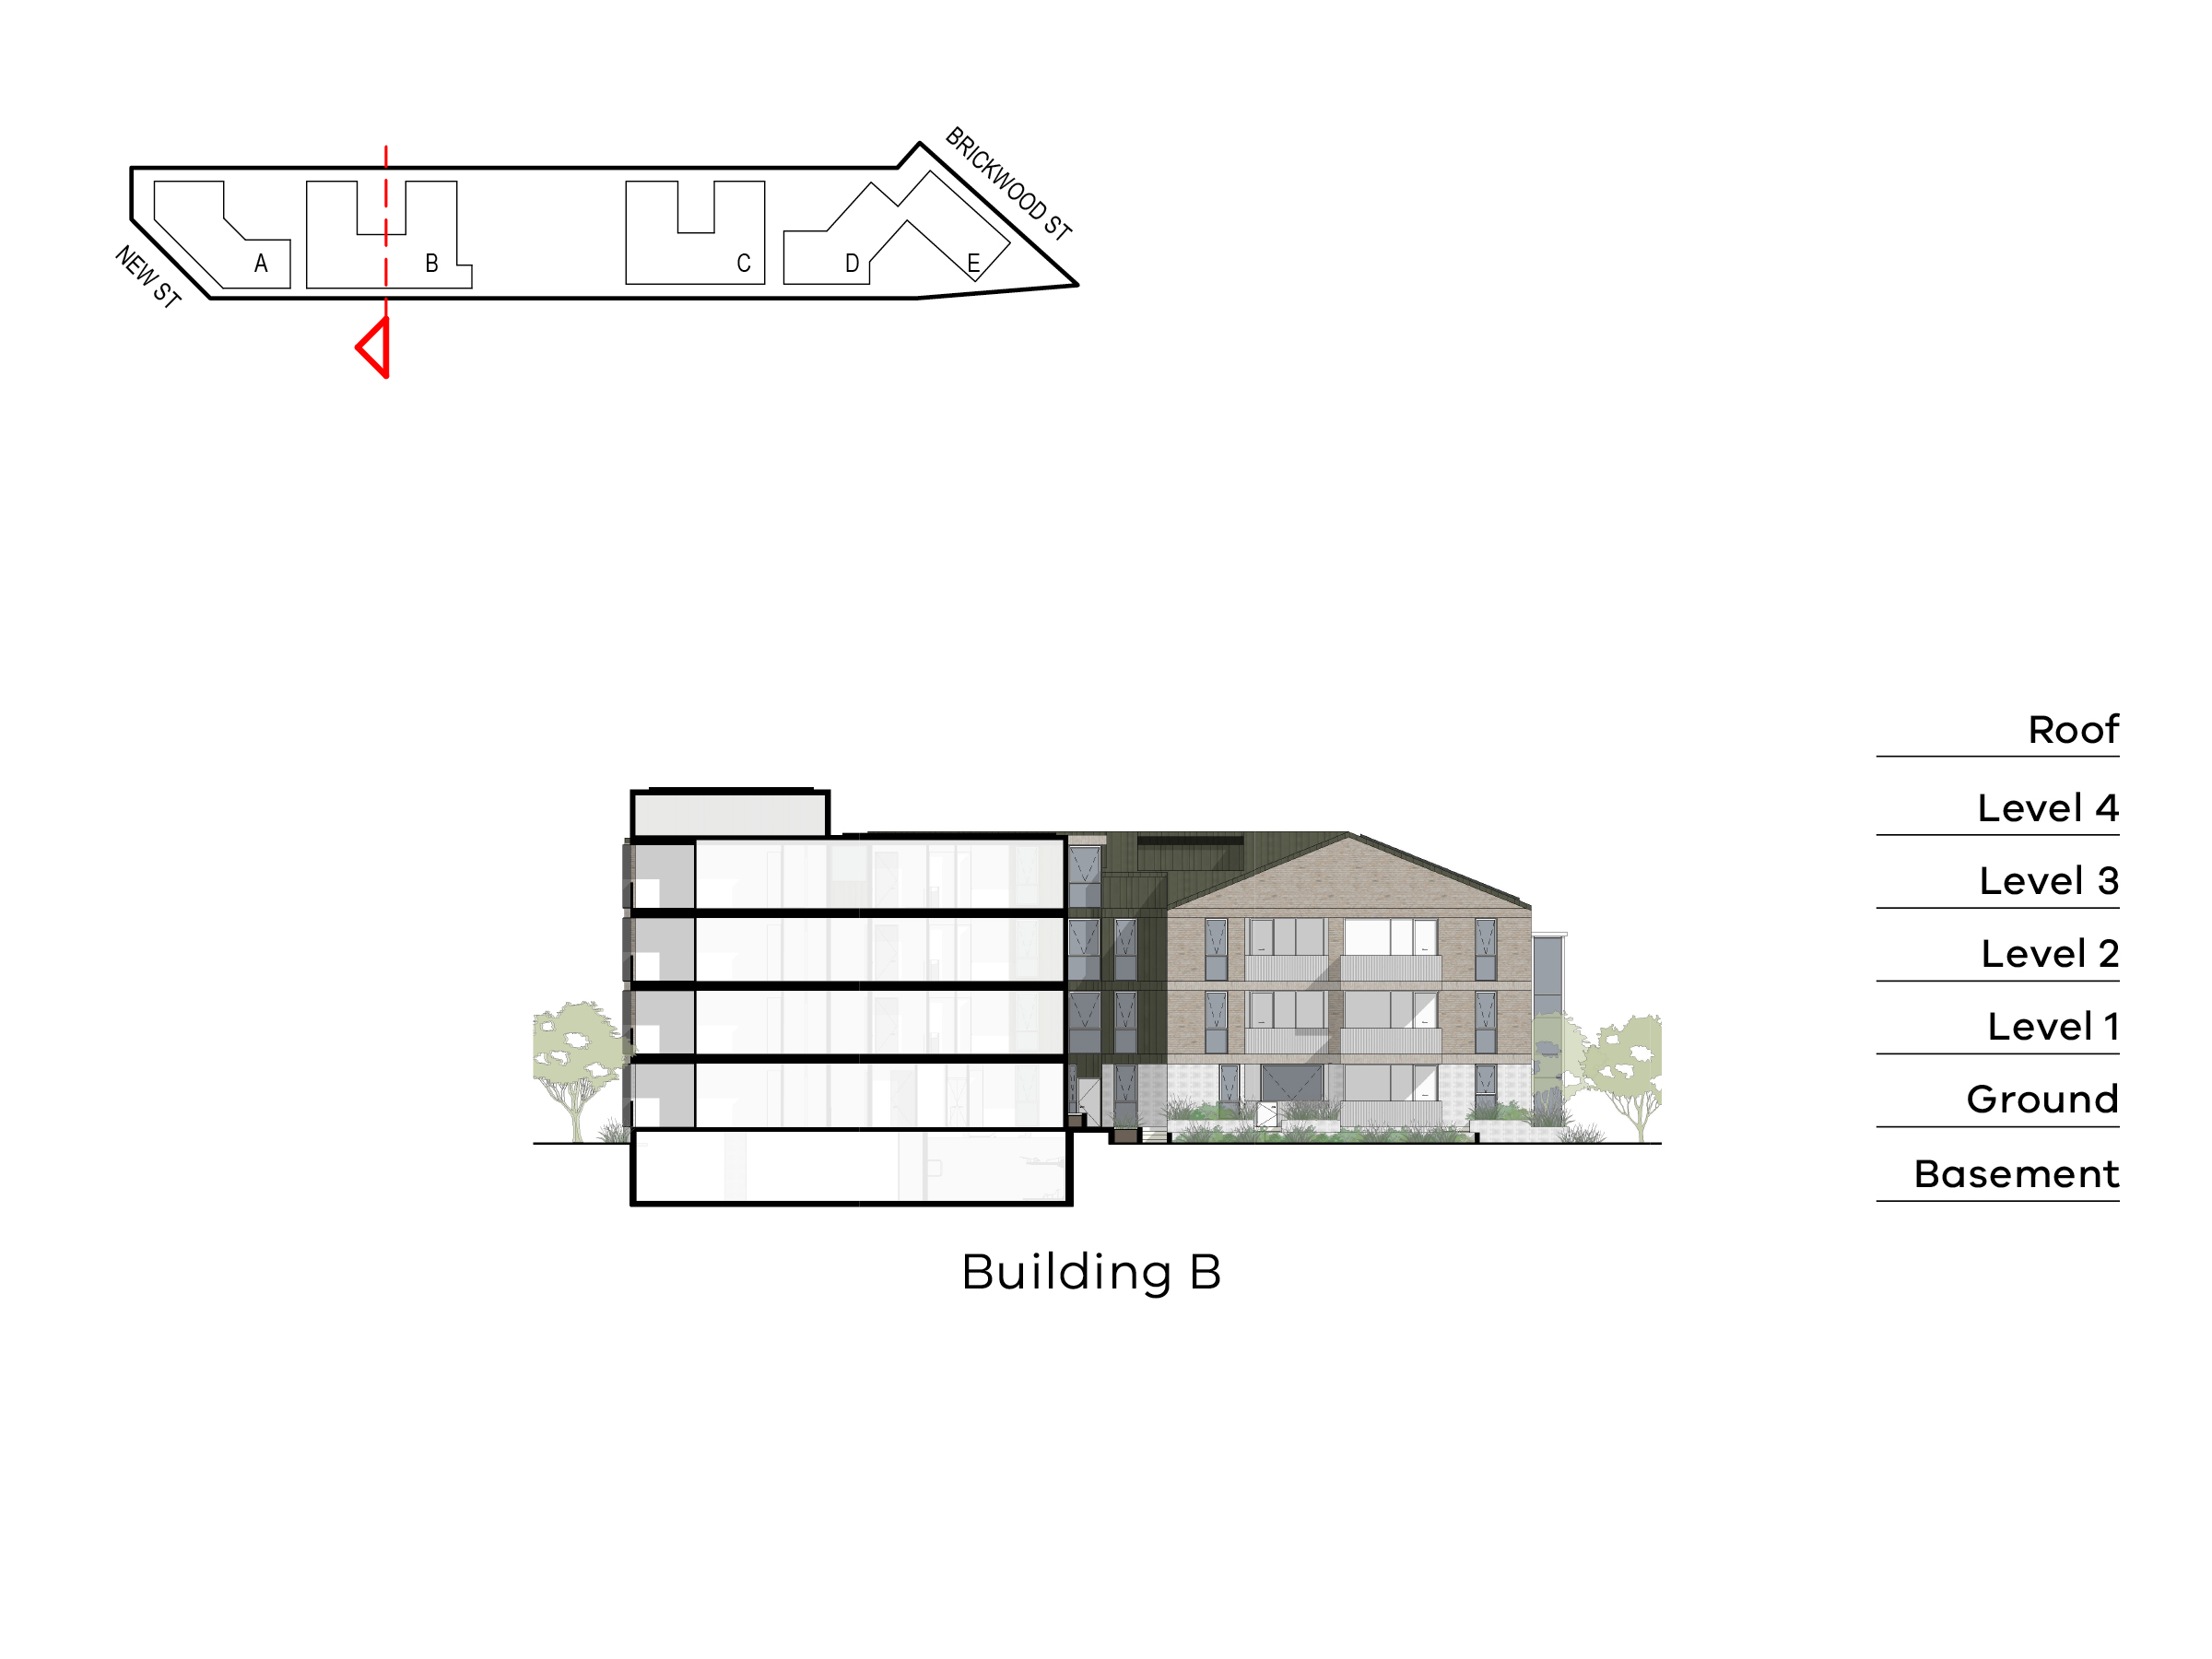 Diagram showing the height of building B as seen from the entry of building B towards New Street. Building B has ground level, floor 1-2 and a roof on Ebden Street side and basement, ground level, level 1-3 and roof on the Elster Creek side.